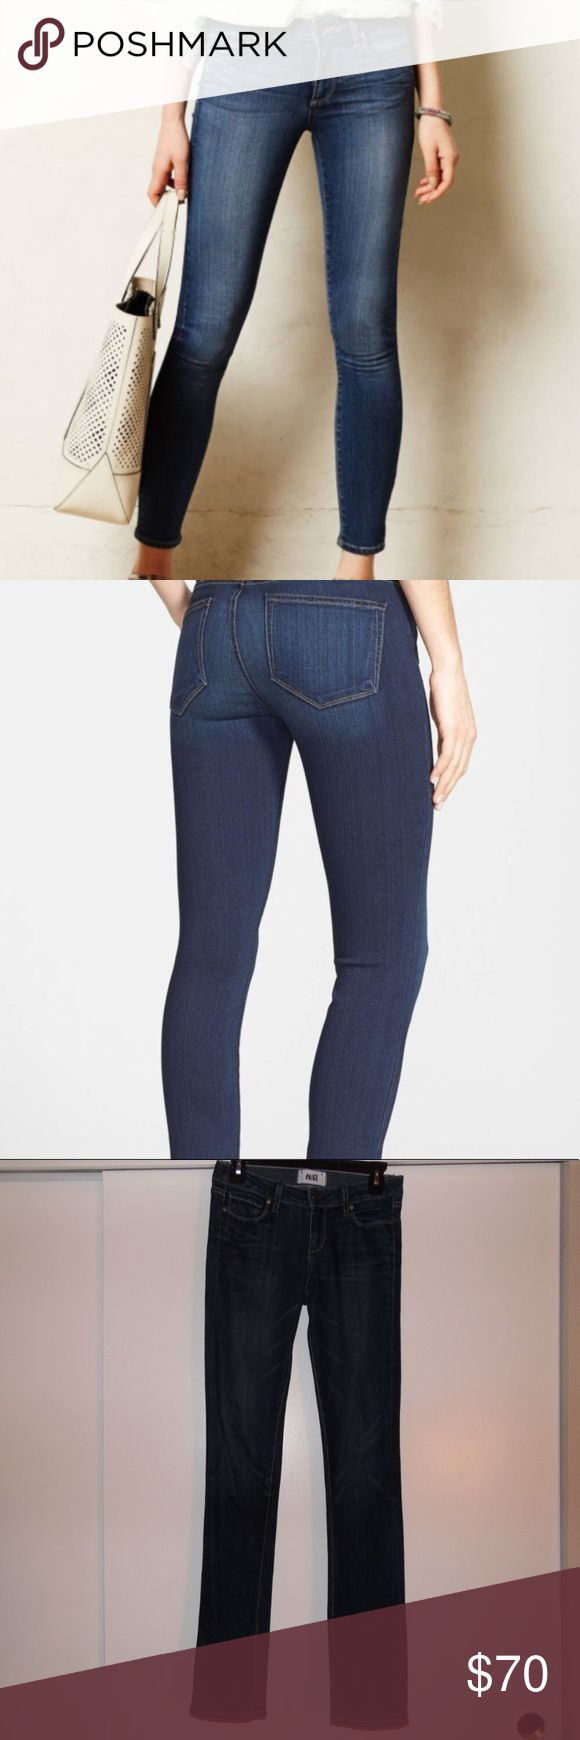 Paige Transcend-Verdugo Ankle Skinny Jeans In very good condition Paige Jeans, size 26. Inseam is 32 inches long. Still in stock for full price on the Nordstrom Web SIte. PAIGE Jeans Skinny